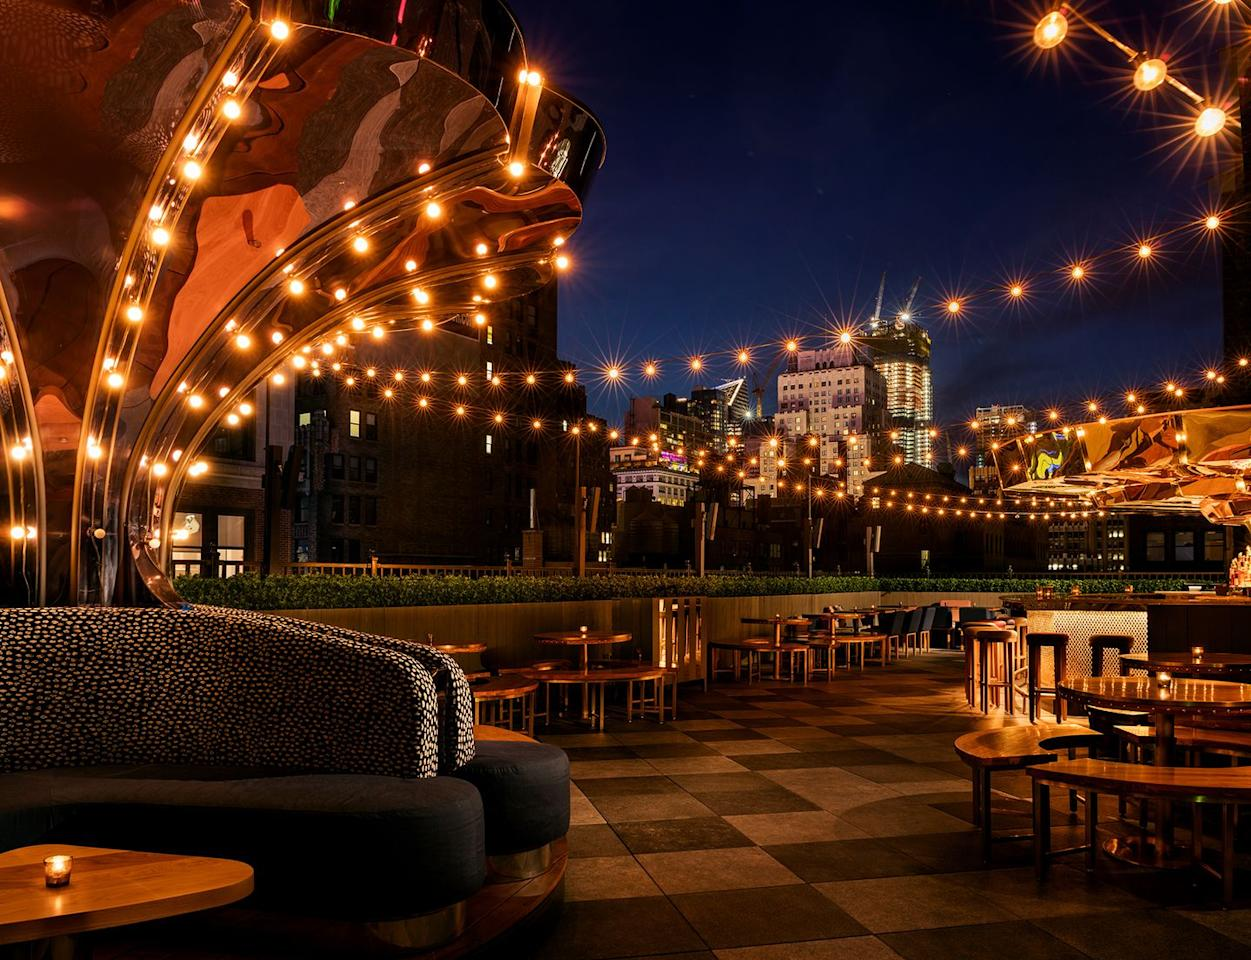 """<p>As much an experience as it is a rooftop bar, the Magic Hour atop the <a href=""""http://moxy-hotels.marriott.com/nyc/timessquare/dining/magic-hour-rooftop-bar-lounge/"""" target=""""_blank"""">Moxy Hotel</a> in Midtown features a variety of spaces, including multiple bars, a moving carousel, and a slightly racy putt-putt course. The cocktails and boozy treats are equally whimsical with playful options like the Margarita Gummy Bear and alcoholic push-pops. </p>"""